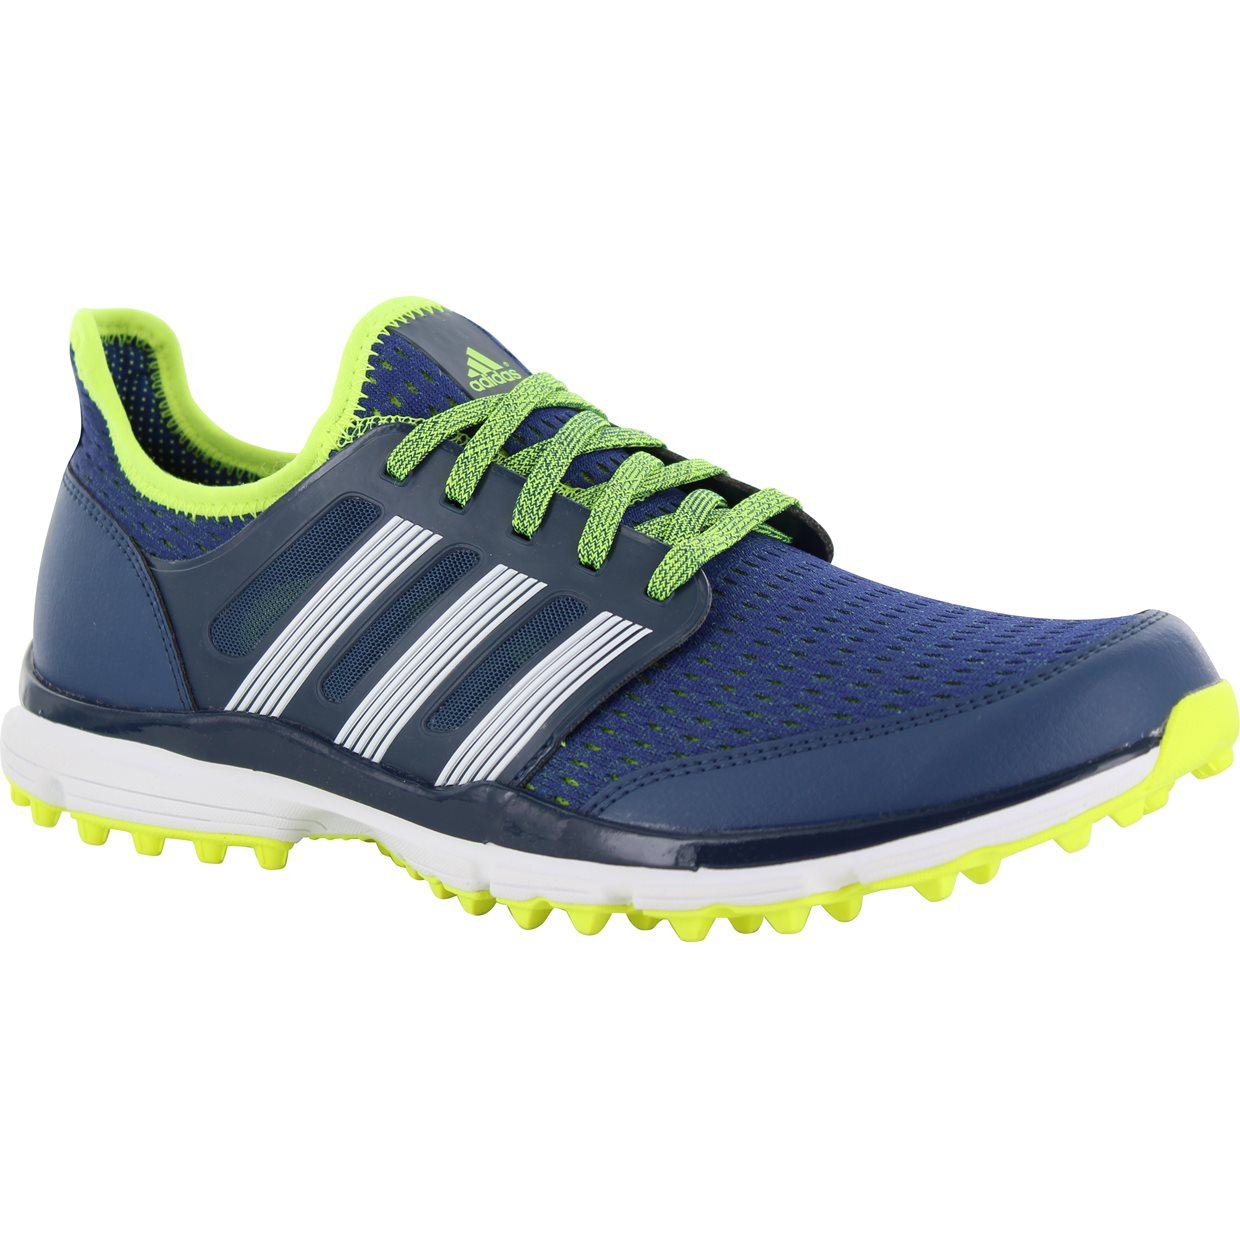 adidas Golf Shoes  New 2018 Range  Clubhouse Golf